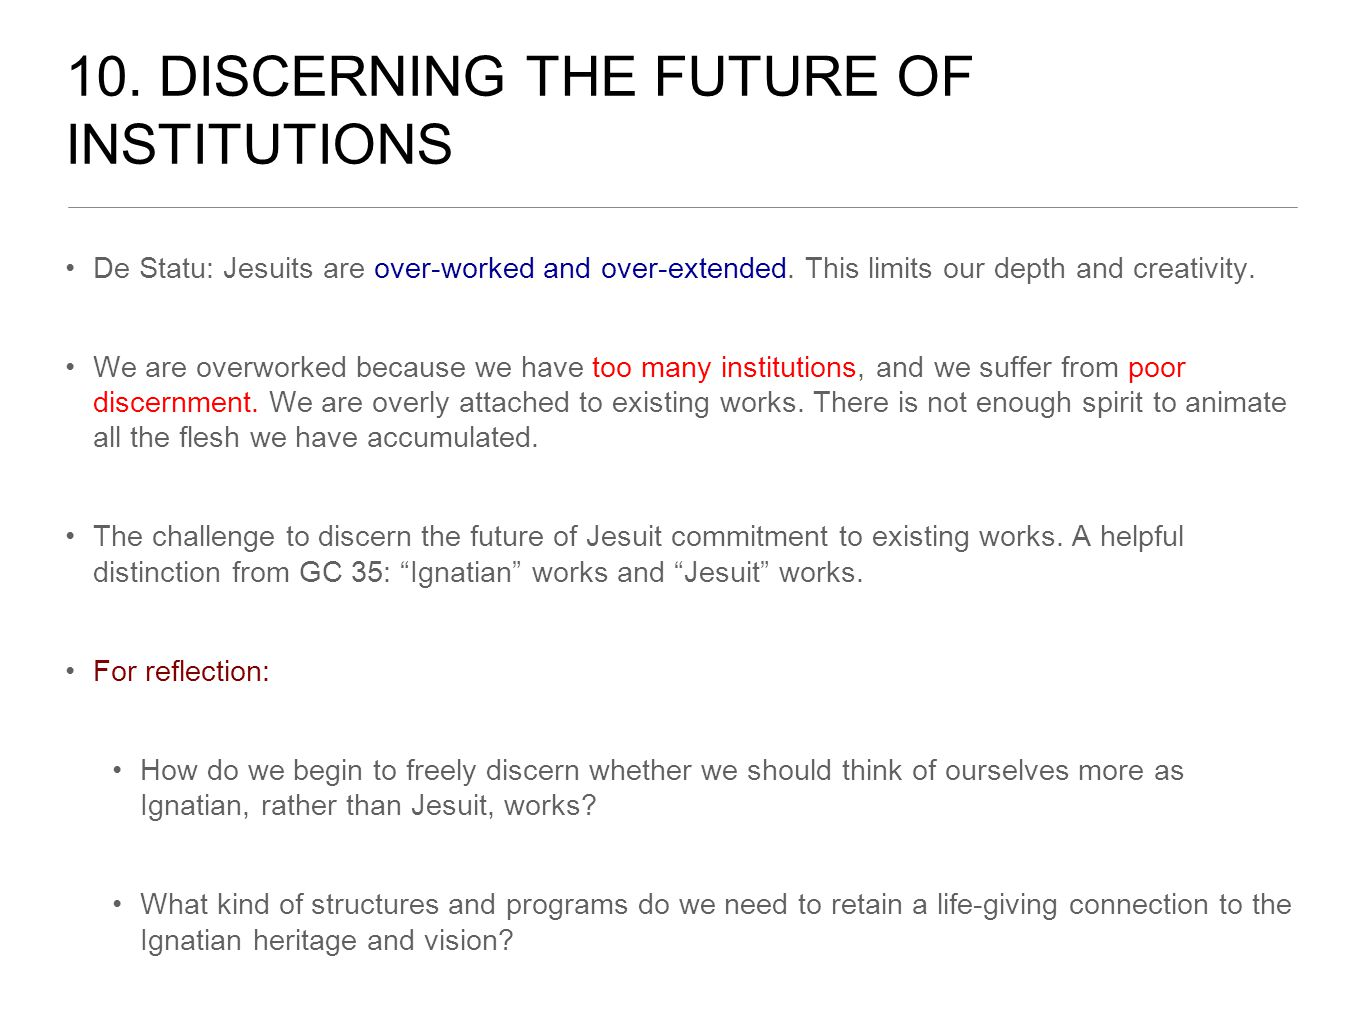 10. DISCERNING THE FUTURE OF INSTITUTIONS De Statu: Jesuits are over-worked and over-extended.